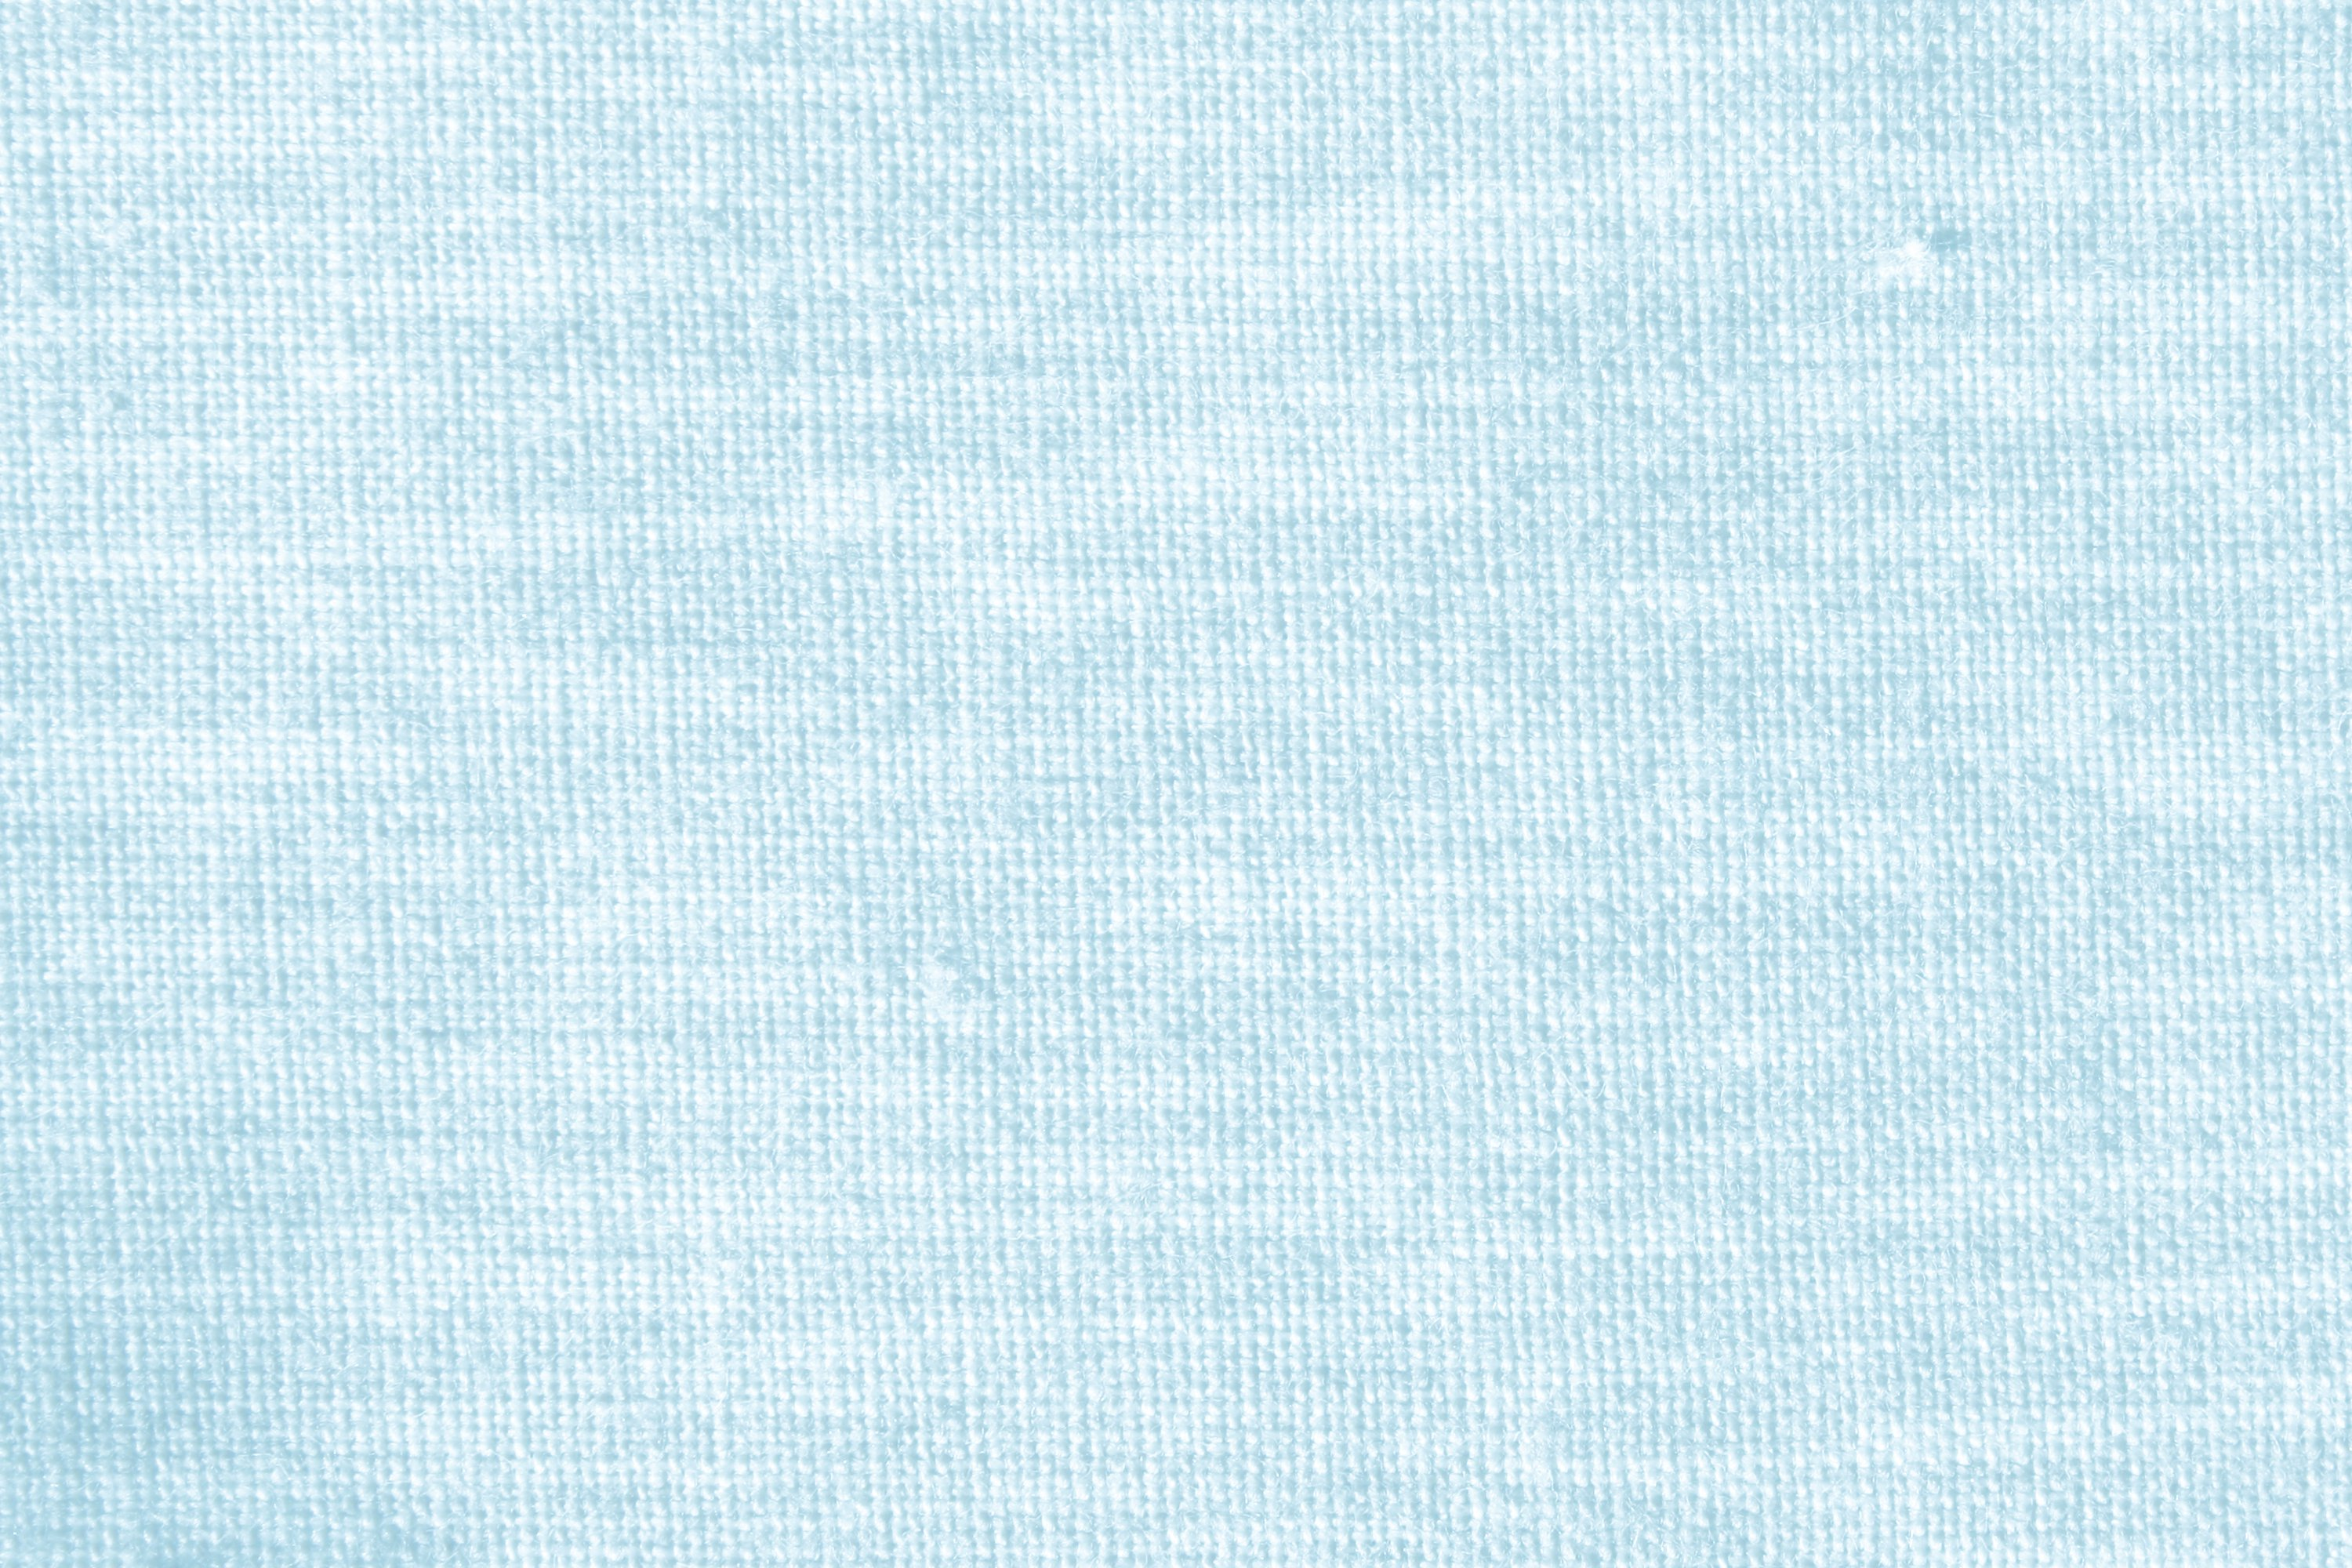 Baby Blue Woven Fabric Close Up Texture   High Resolution Photo 3000x2000